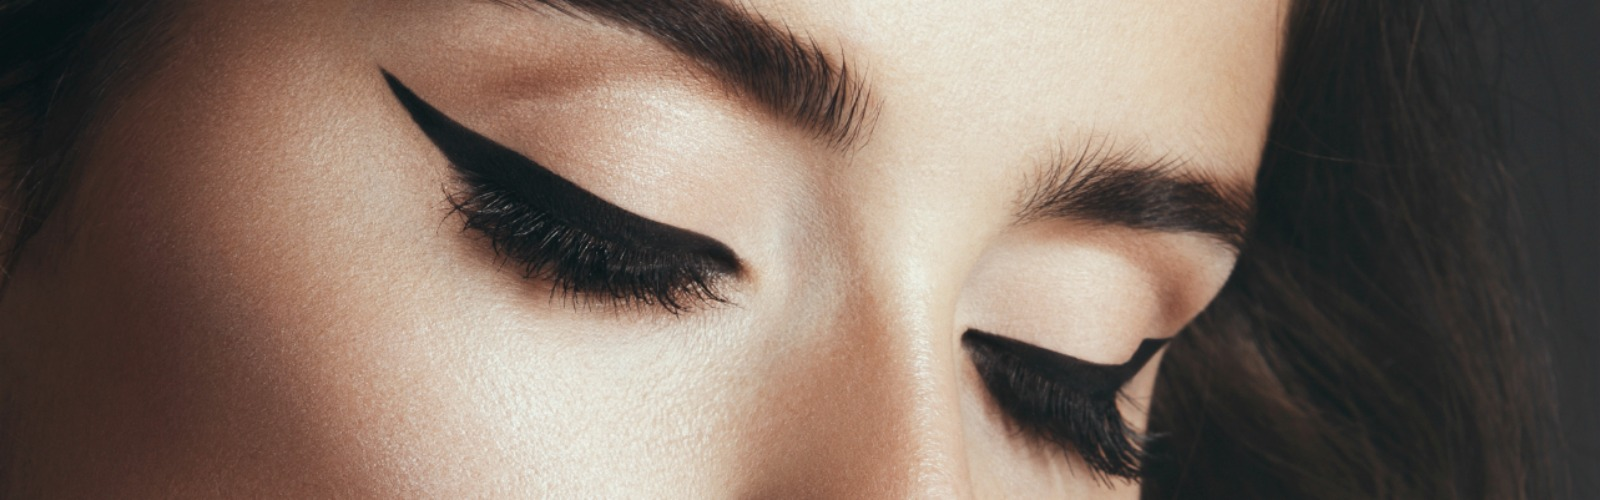 Eyeliner Cheat Sheet: Tips and Tricks